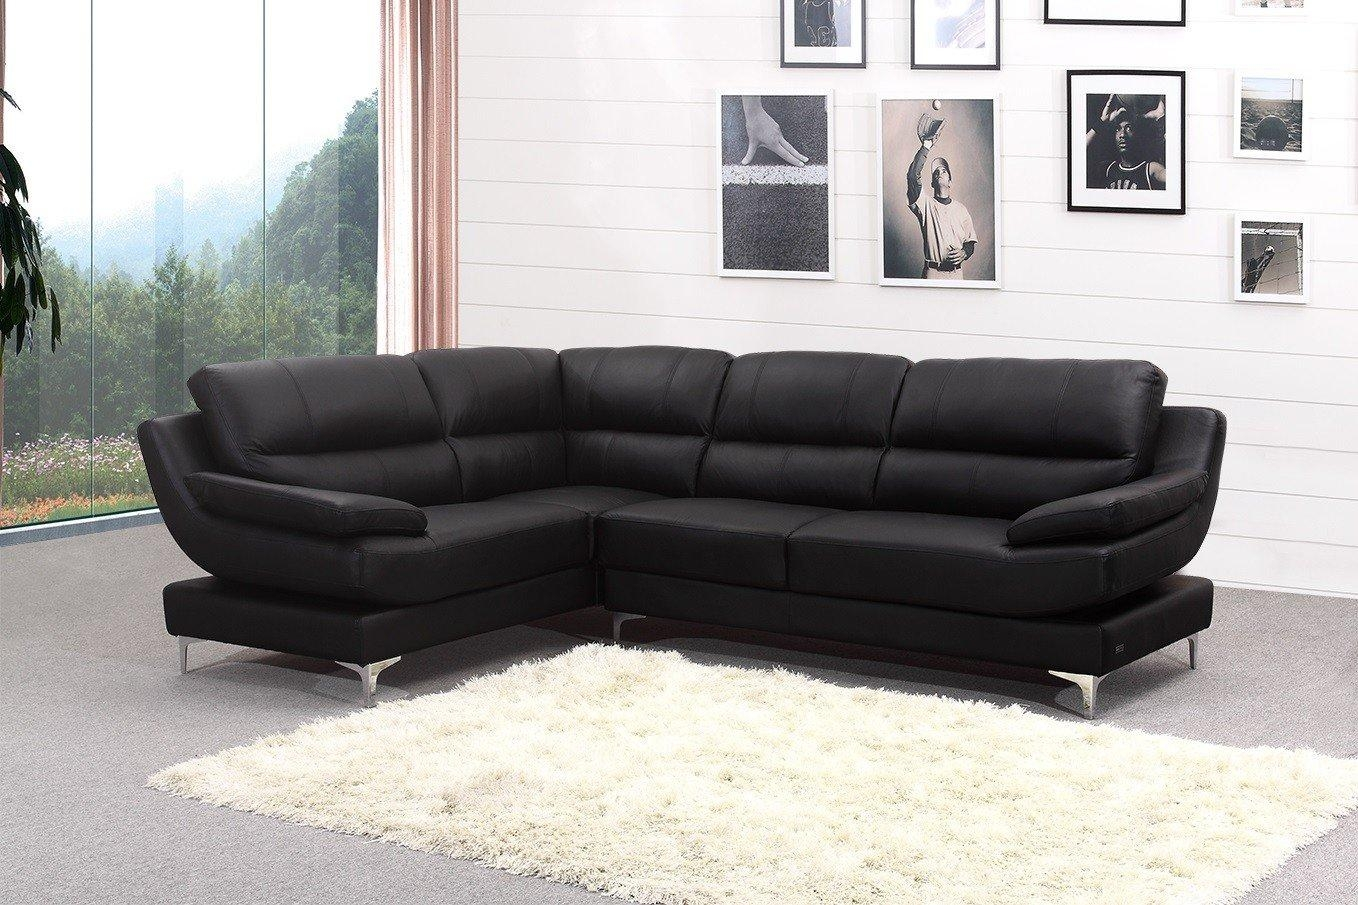 Leather Corner Sofa To Start A Life With Altered Environment For Large Black Leather Corner Sofas (Image 16 of 22)